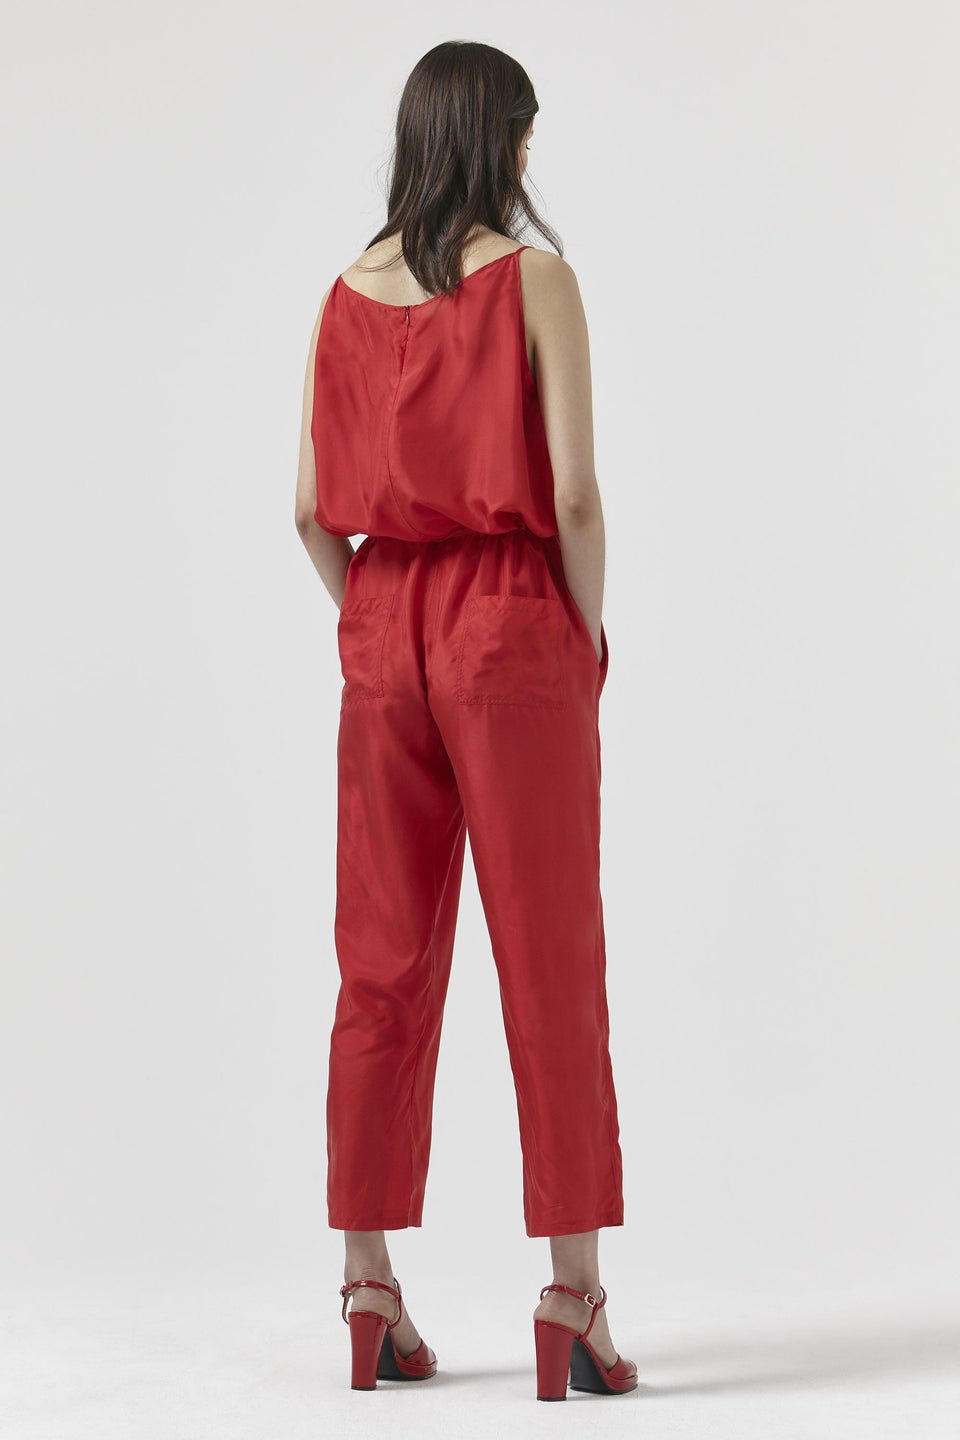 BERNADETTE Red Silk Jumpsuit Jumpsuit Katharine Hamnett London - der ZEITGEIST